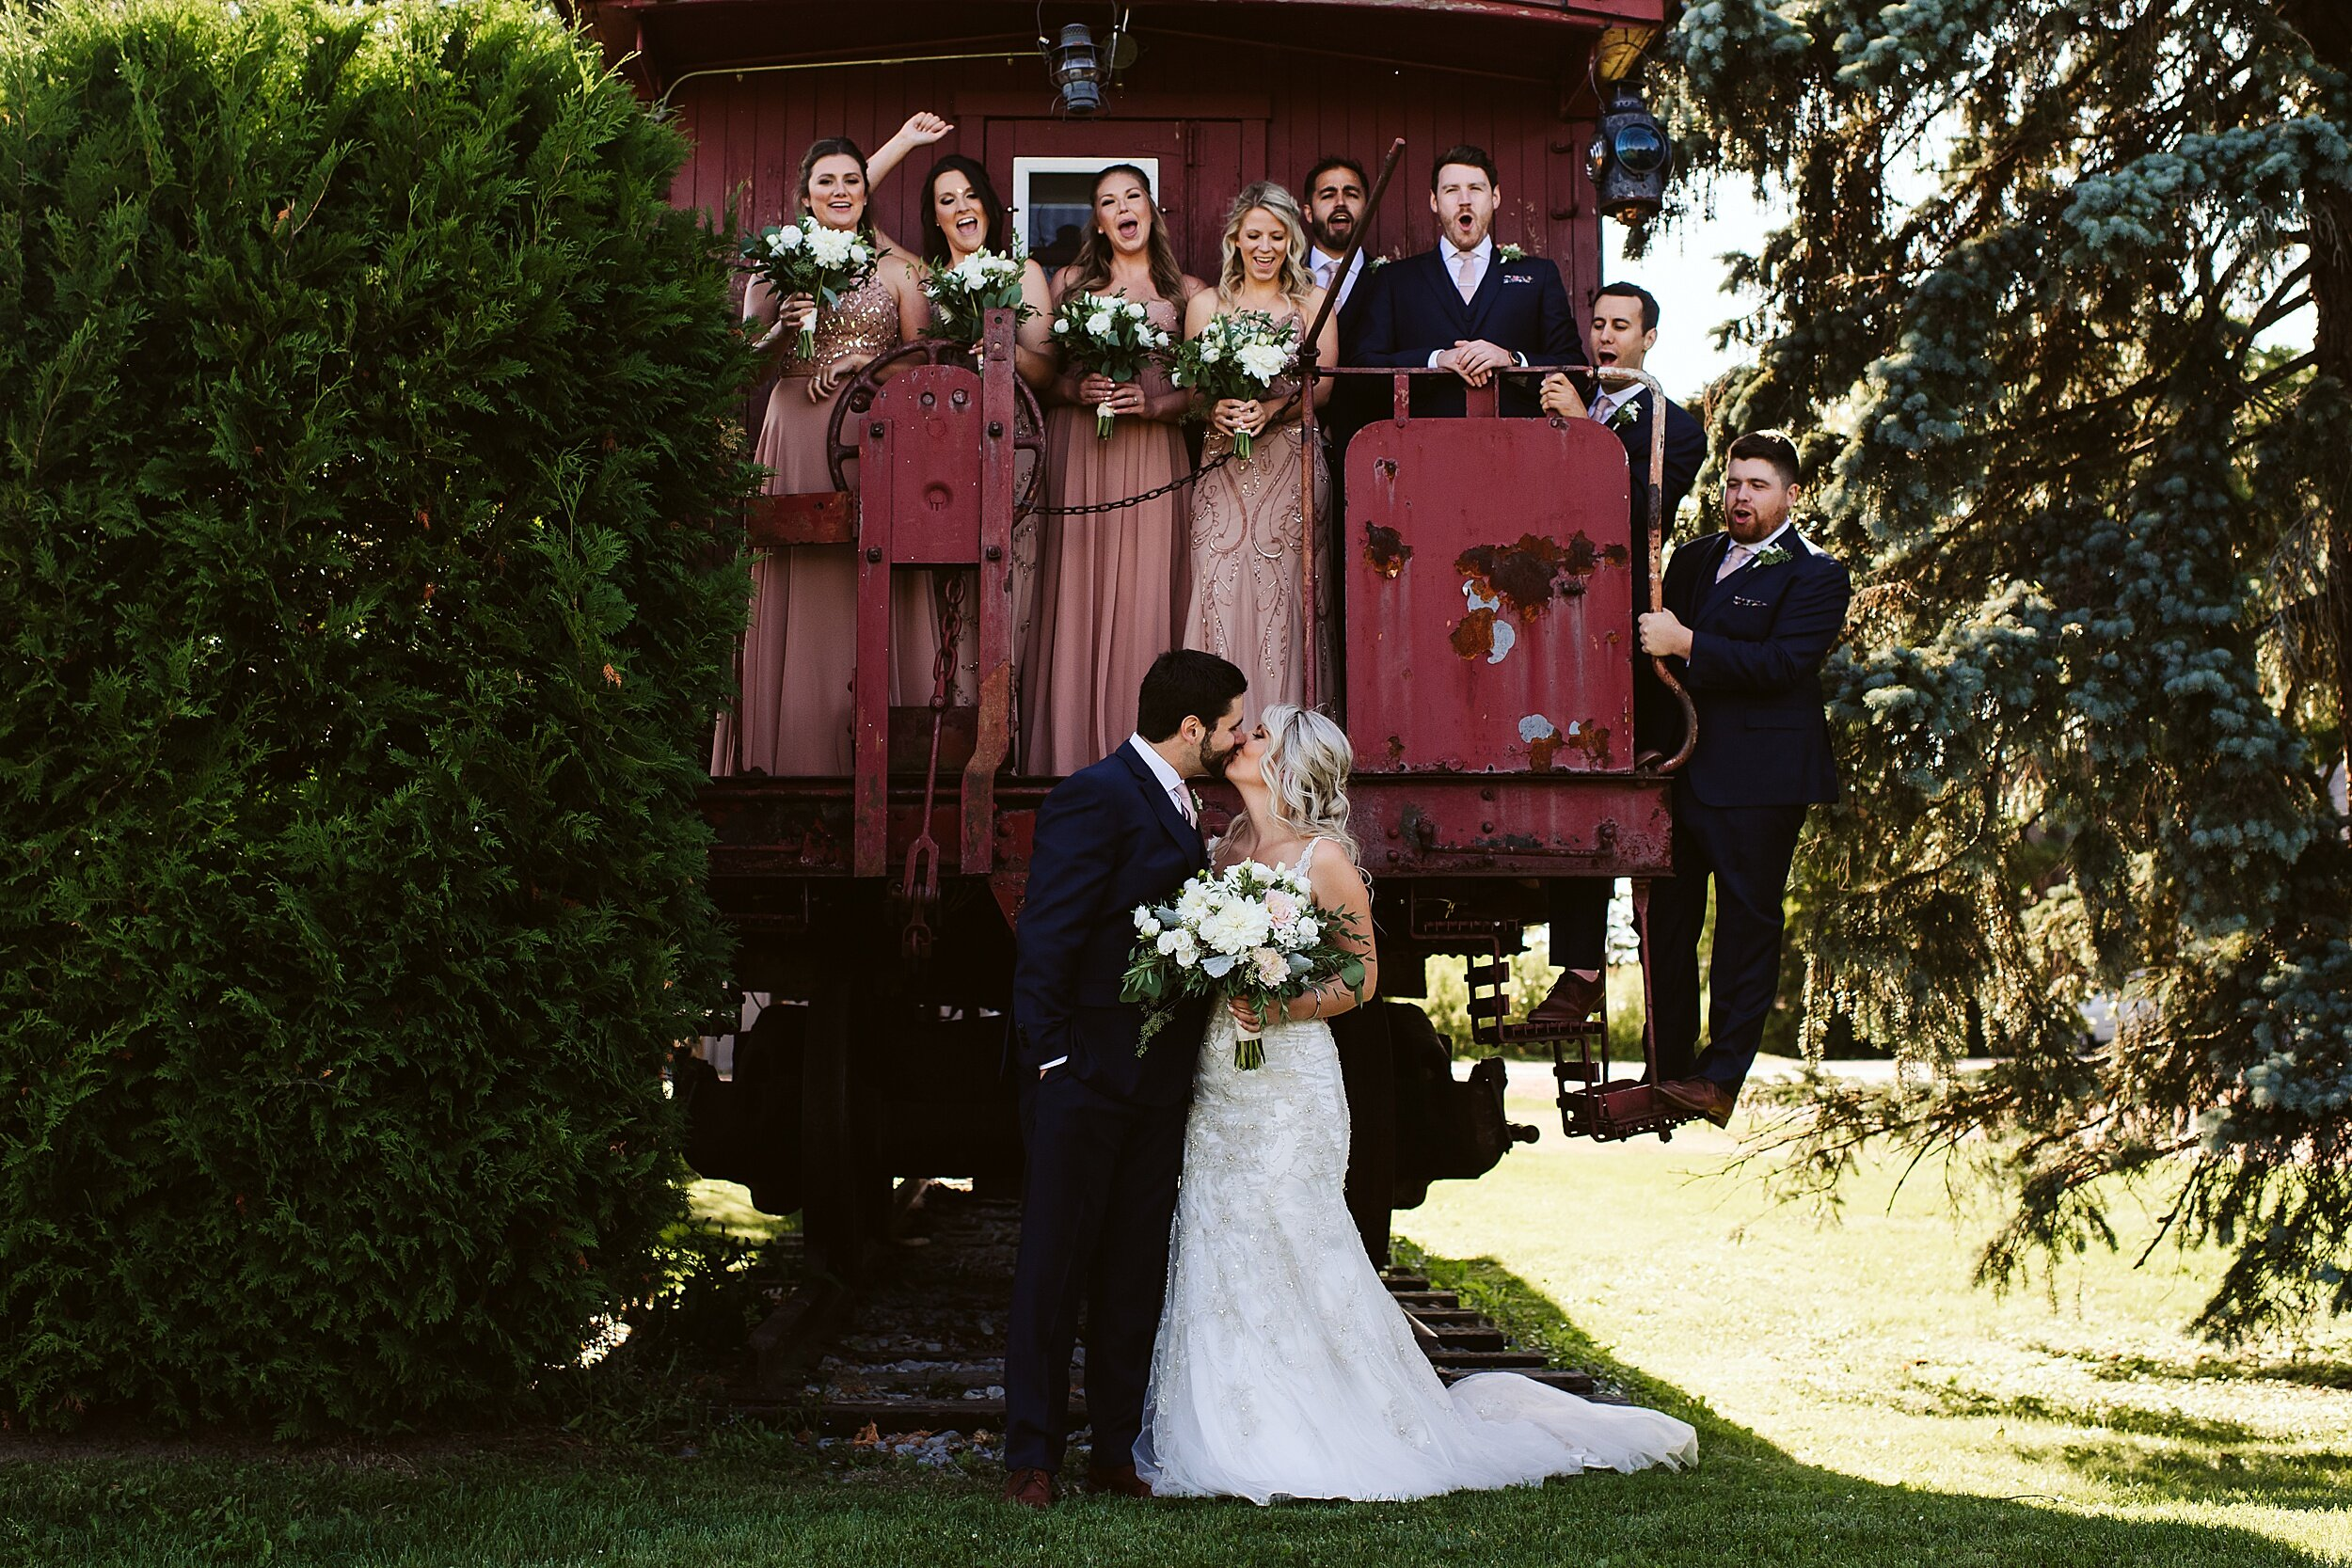 Belcroft-estates-barn-wedding-toronto-photographers_0048.jpg